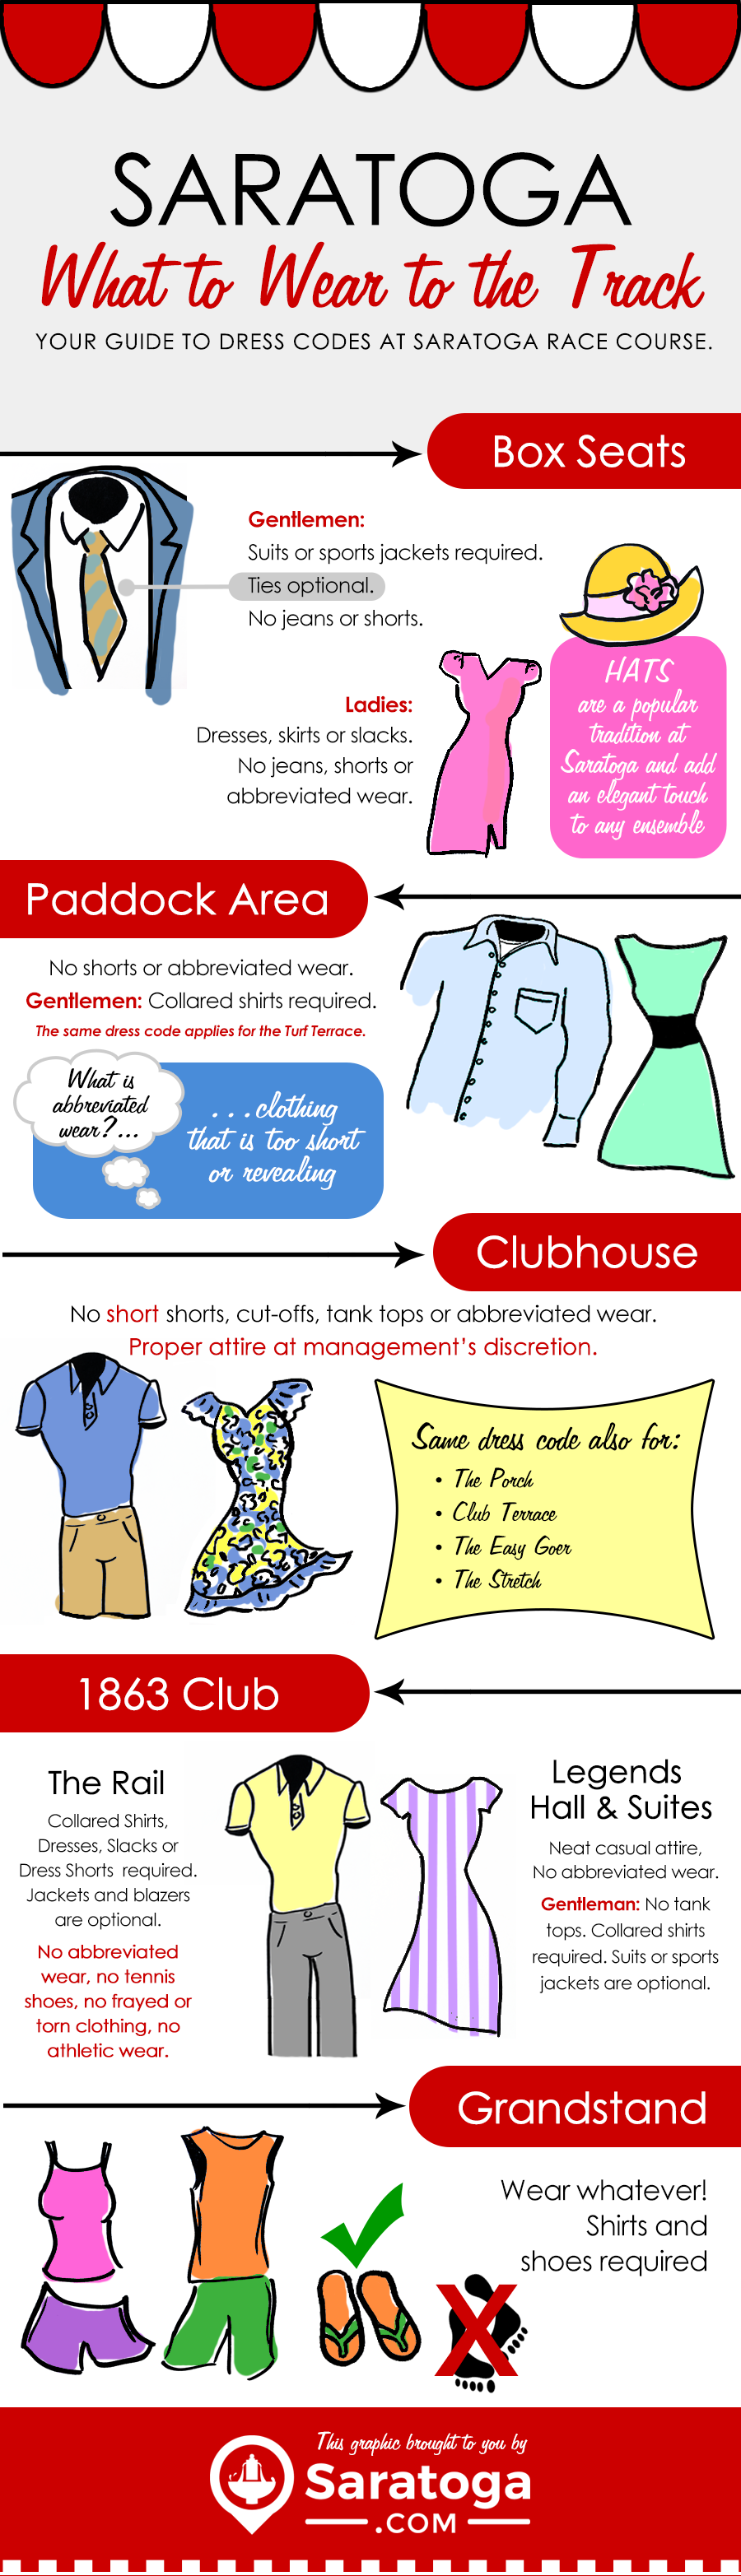 infographic describing what to wear to the track